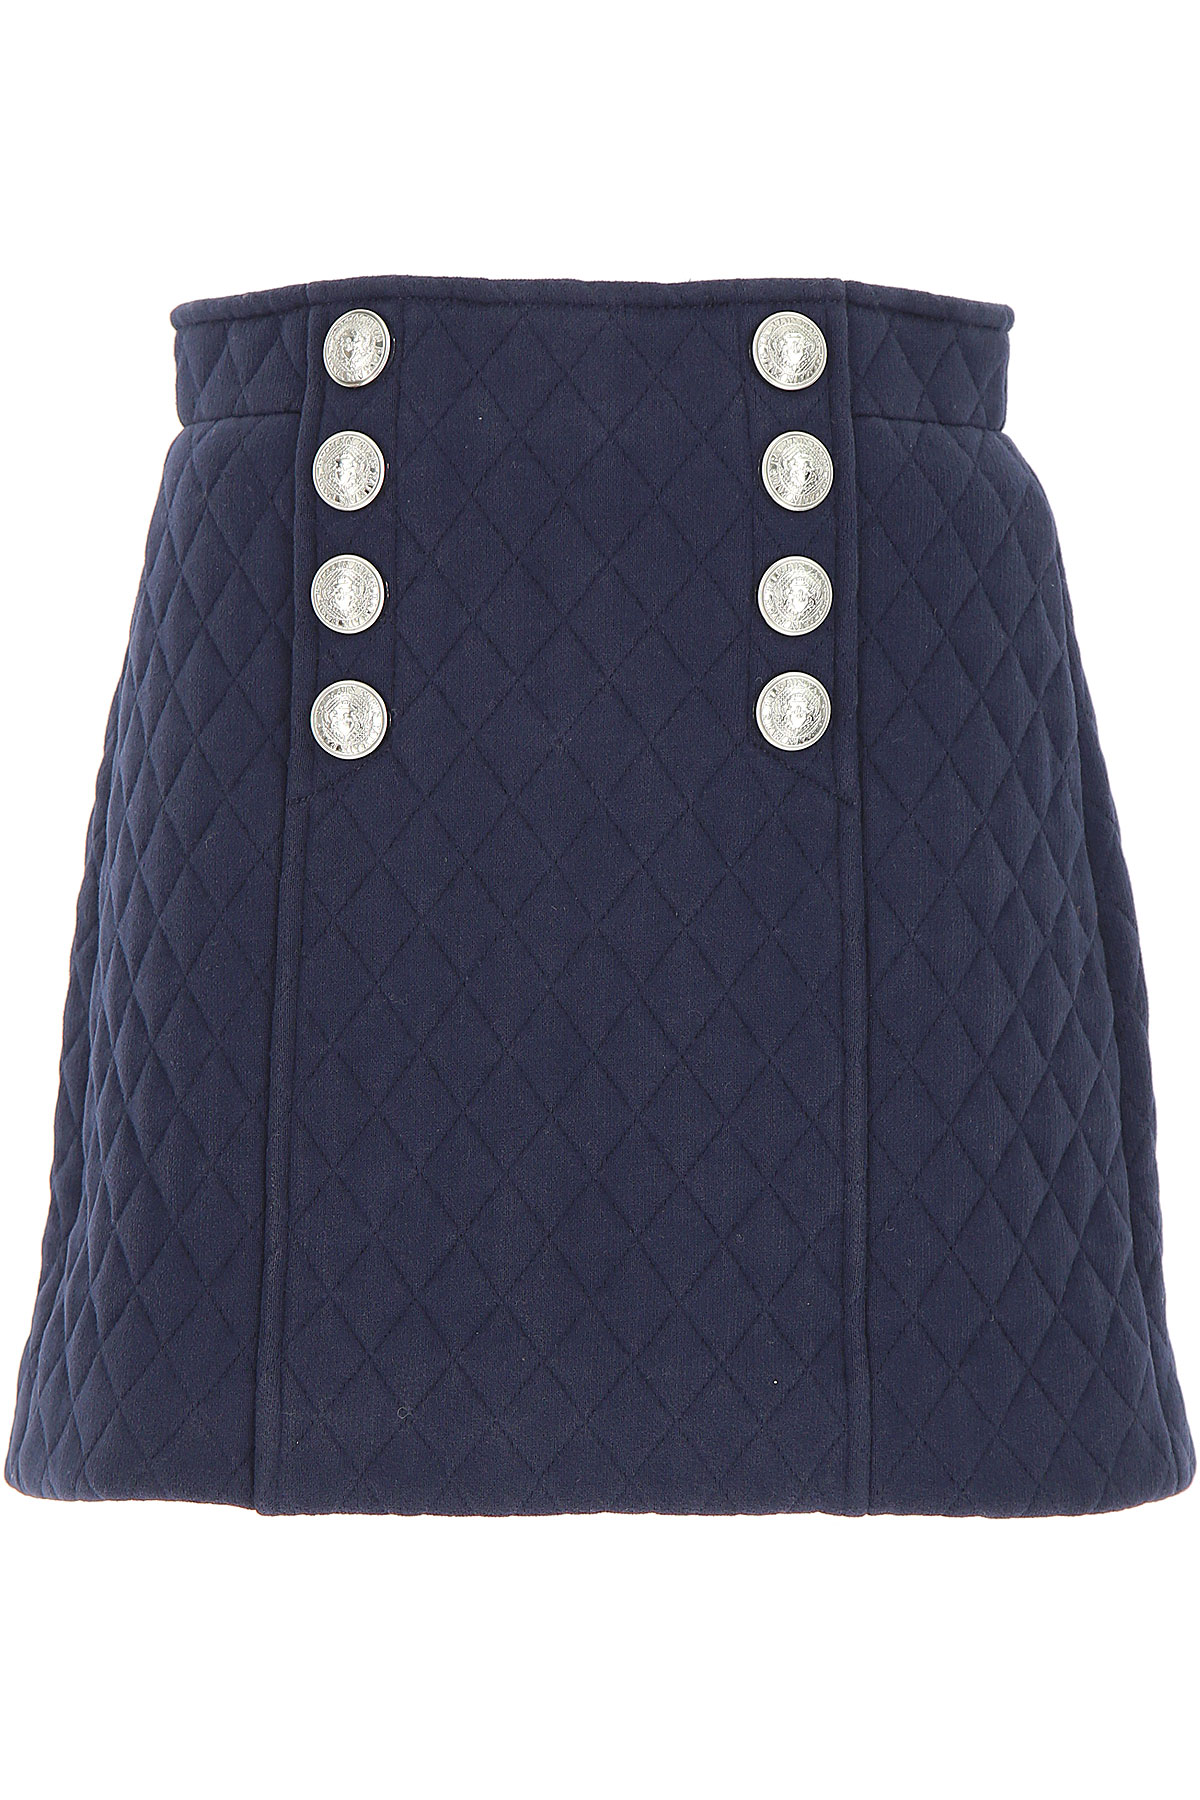 Image of Balmain Kids Skirts for Girls, Blue, Cotton, 2017, 10Y 14Y 8Y